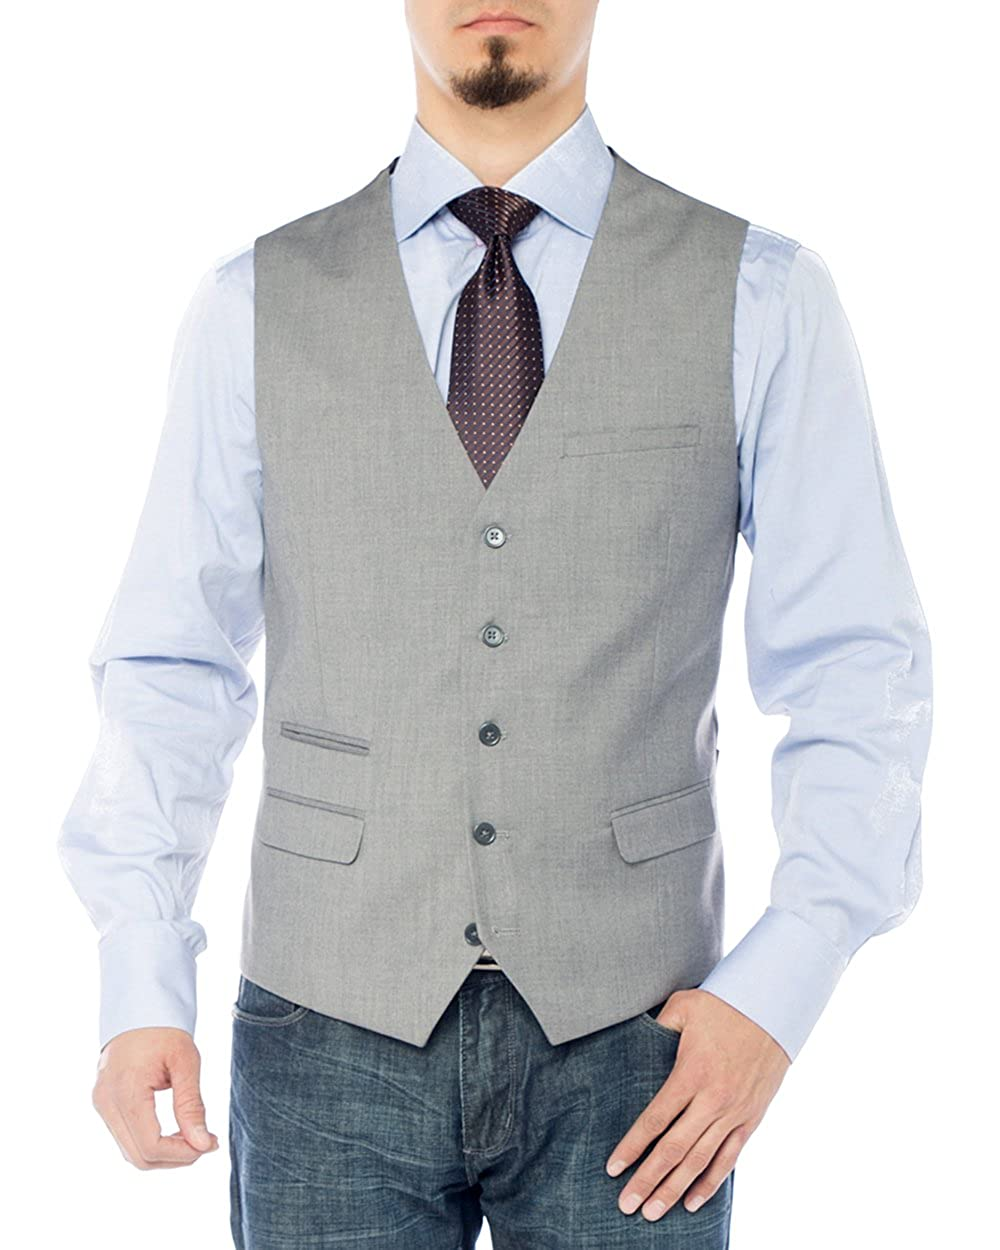 f2b09c3bfdb GN GIORGIO NAPOLI Men s Modern Fit Vest Dress Suits Waistcoat for Suit  Tuxedo at Amazon Men s Clothing store